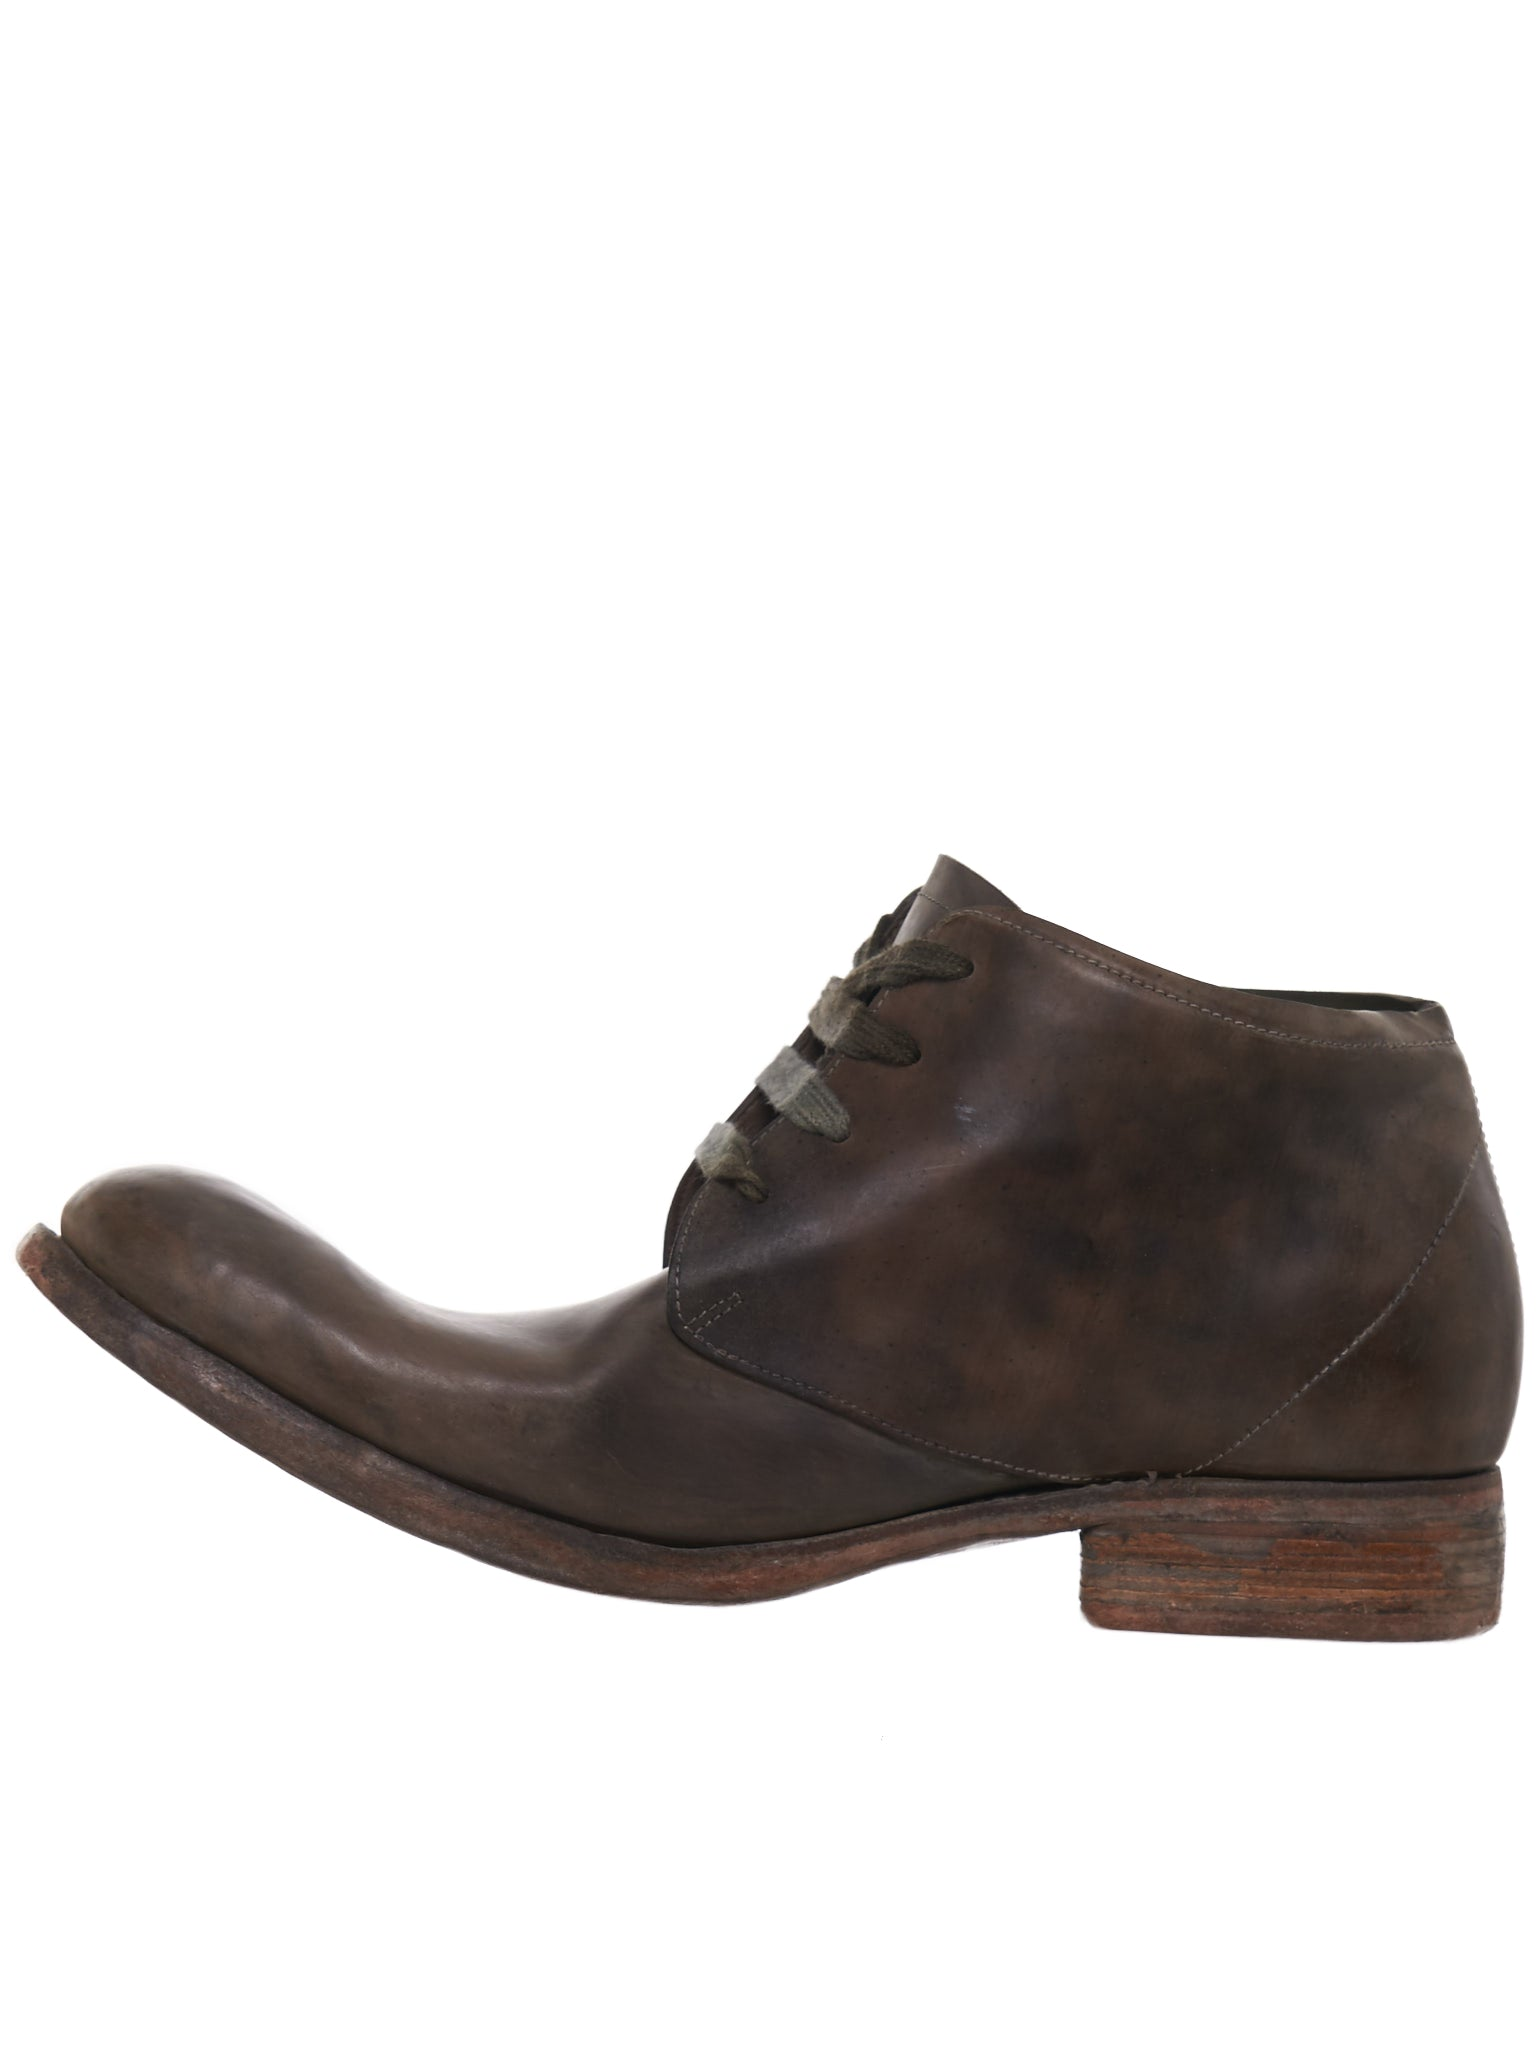 Reverse Horse Leather Boot (A18-CORDOVAN-GREEN)